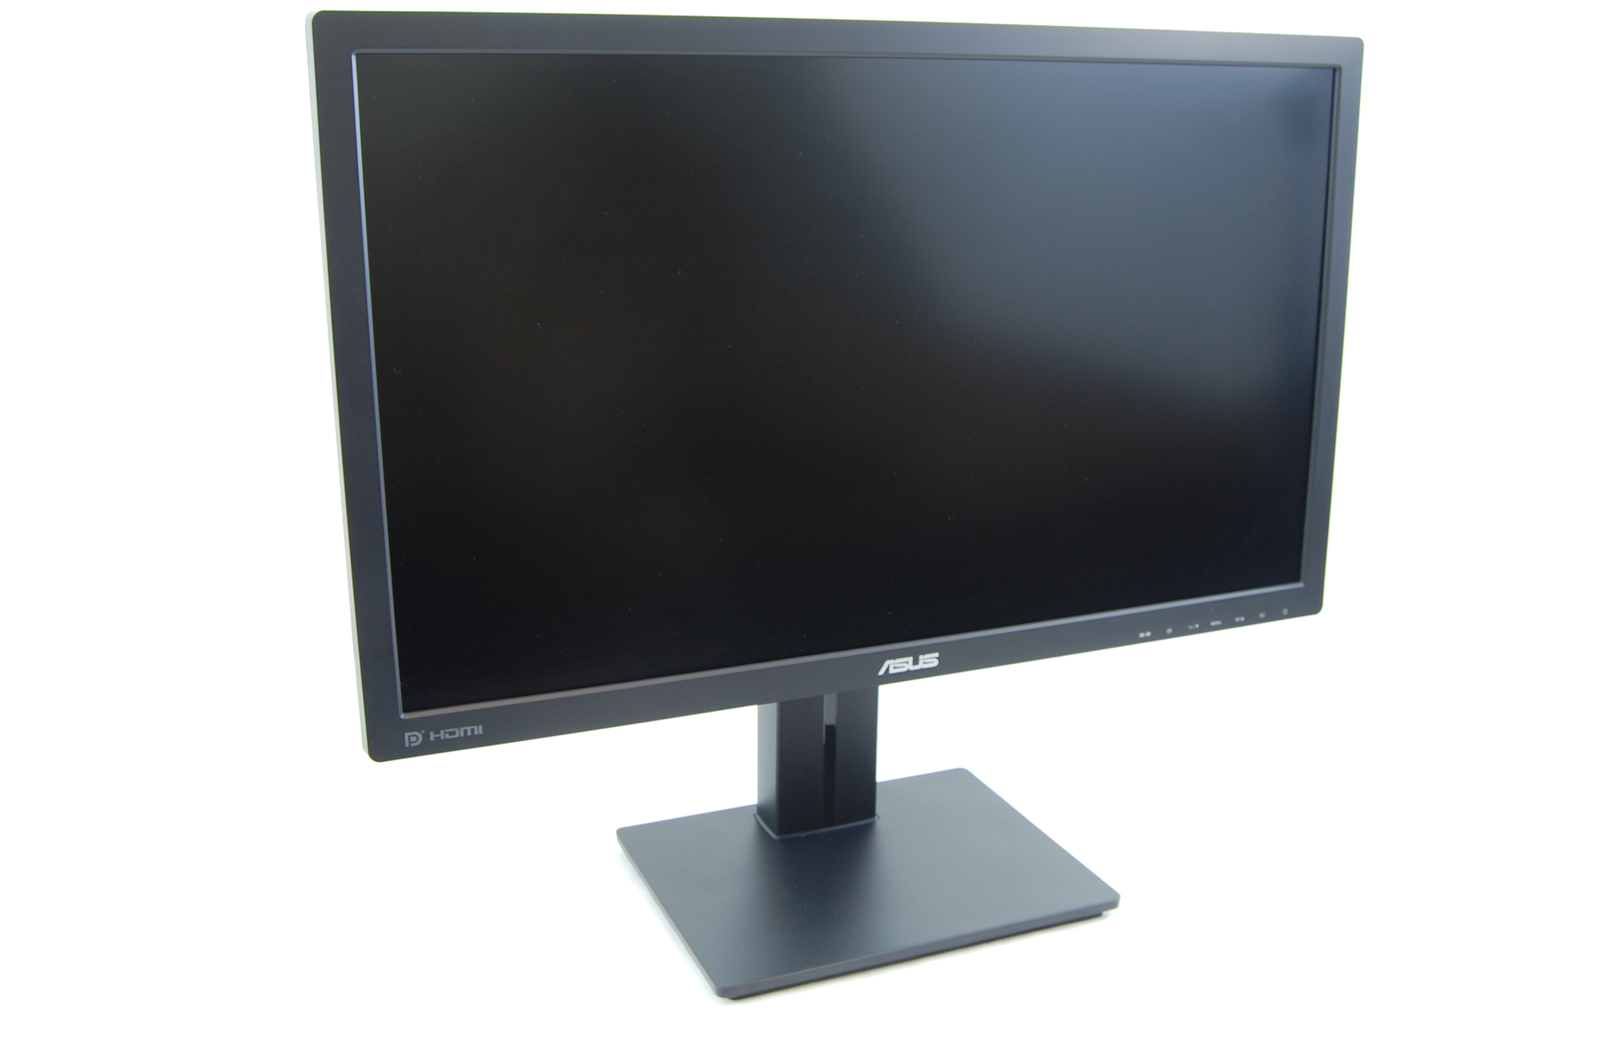 ASUS-PB278Q WQHD LED PLS 27-inch 2560x1440 Monitor Review - Intro Iso View